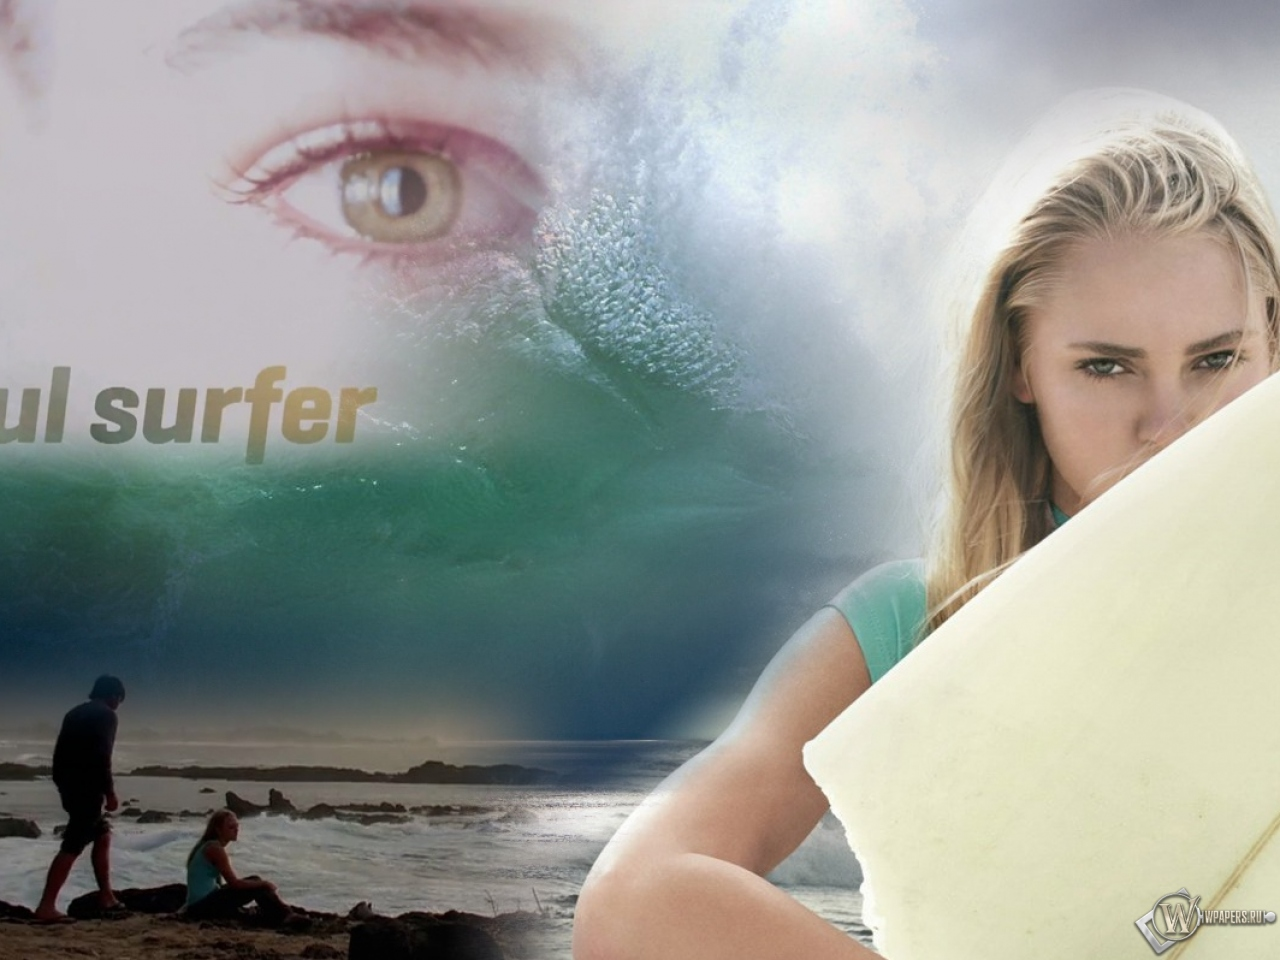 soul surfer essays In the autobiography soul surfer by bethany hamilton three key ideas i found interesting were resilience, hope and courage soul surfer is an inspiring tru.